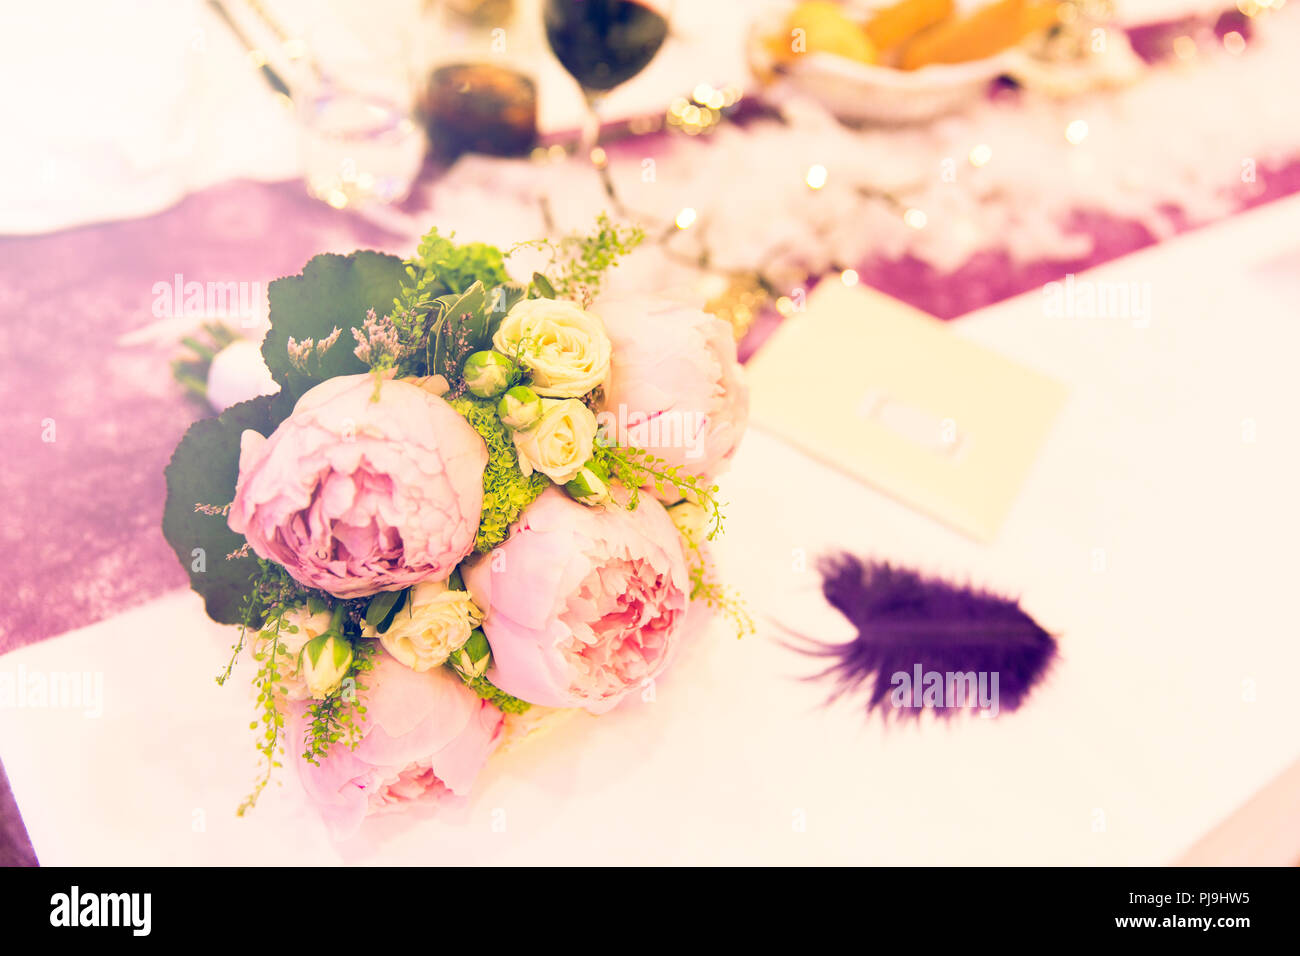 Shabby Chic Bridal Bouquet with Pink Peony Flowers - Stock Image